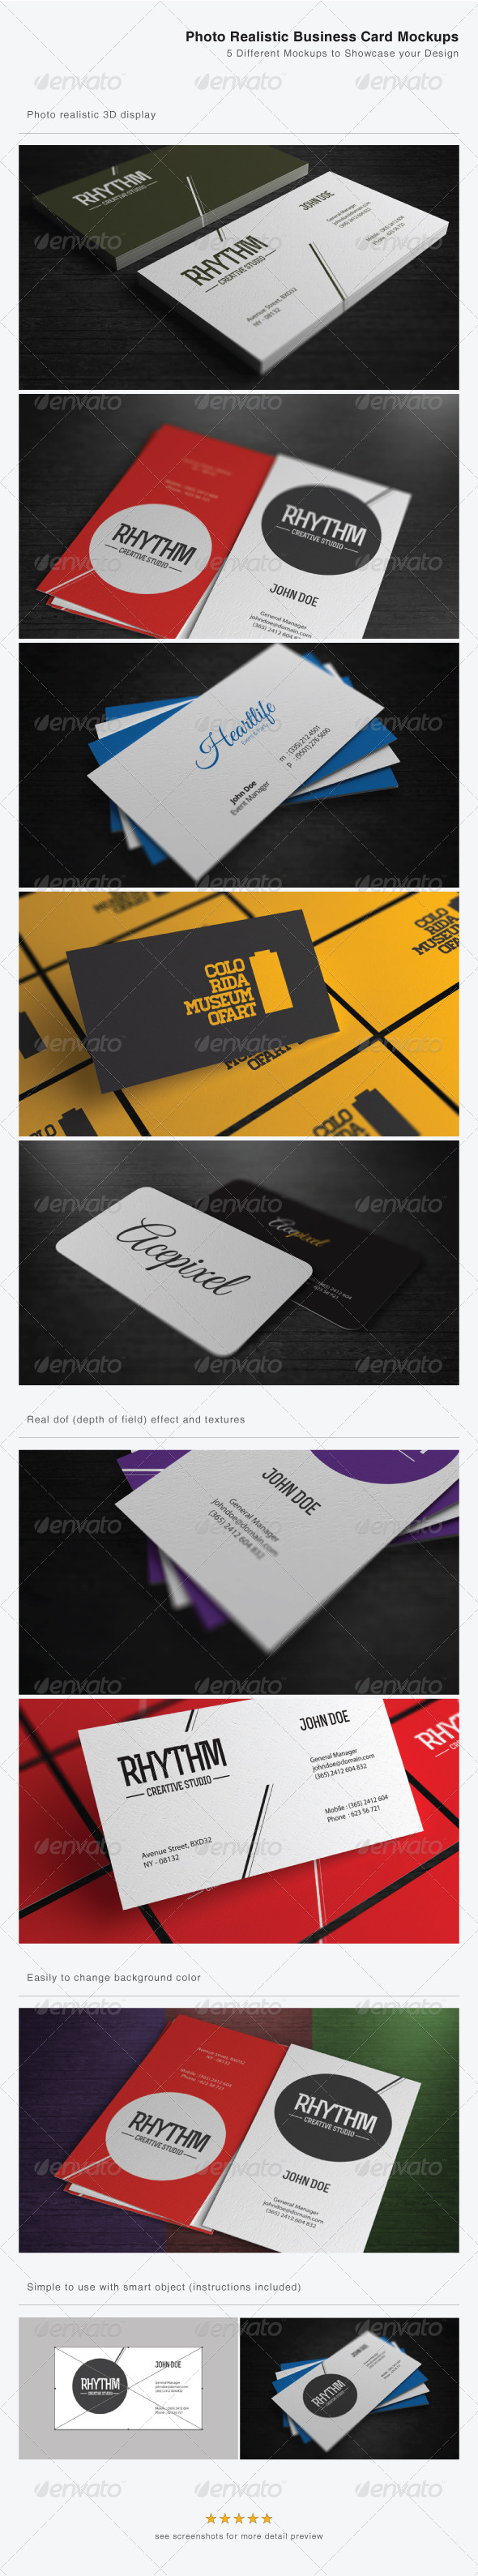 Photo Realistic Business Card Mockups - Print Product Mock-Ups